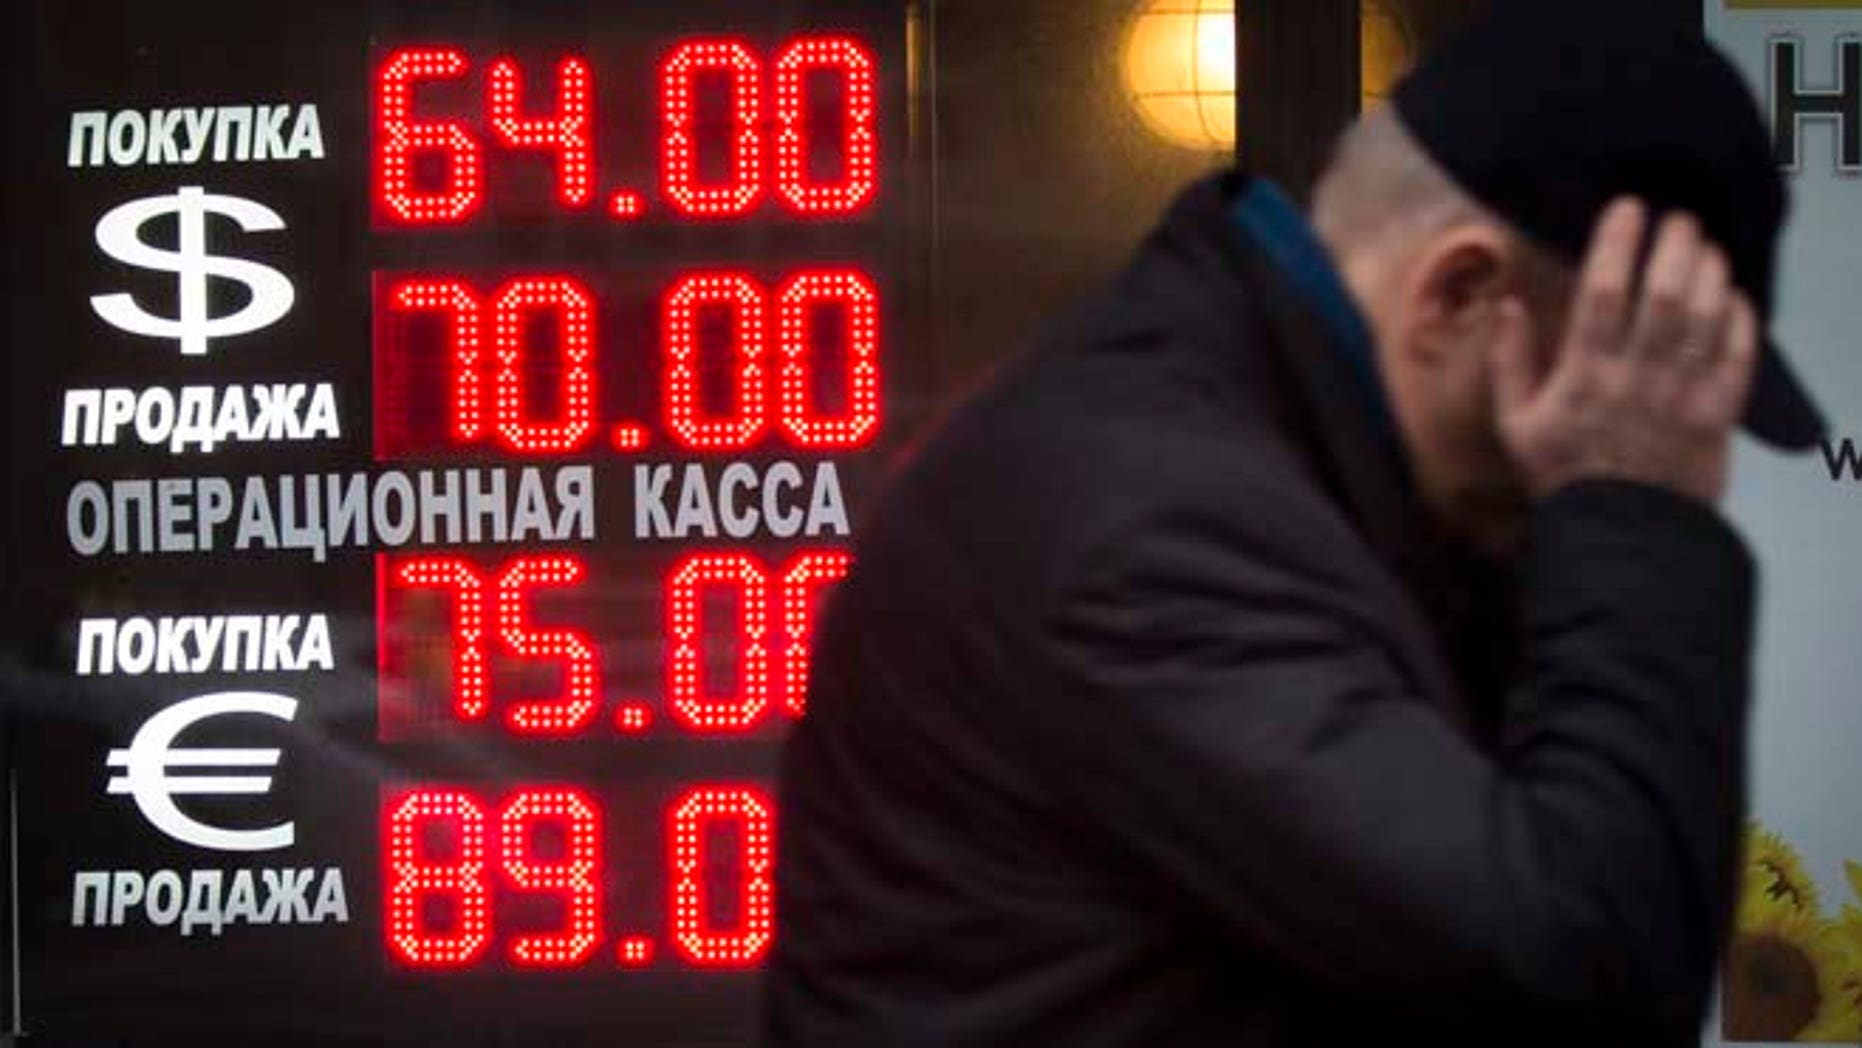 Dec. 16, 2014: Signs advertising currencies light next to the exchange office in Moscow, Russia. After a massive overnight rate hike by Russia's Central Bank, the ruble staged a two-hour rally Tuesday morning before rolling back to new historic lows.